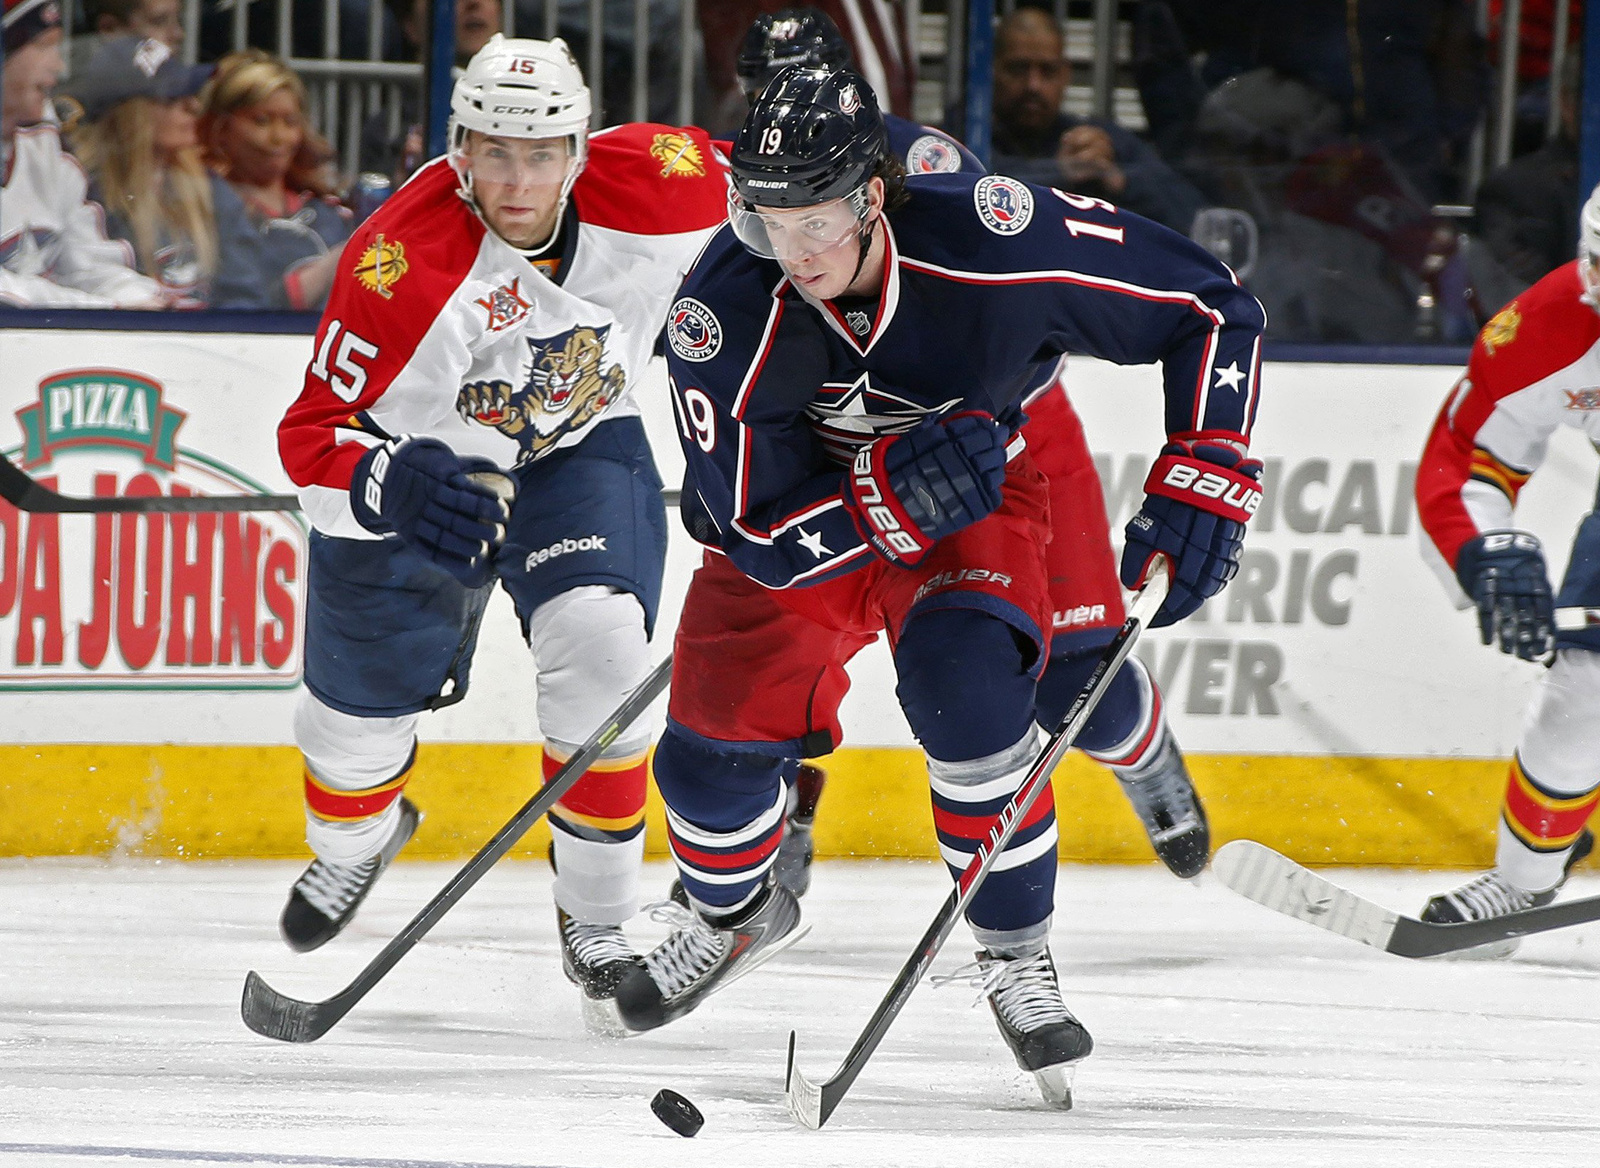 Columbus Blue Jackets center Ryan Johansen (19) carries the puck up ice in front of the Florida Panthers' Drew Shore (15) during a game at Nationwide Arena in Columbus on  March 1, 2014. Columbus won, 6-3. Credit: Courtesy of MCT